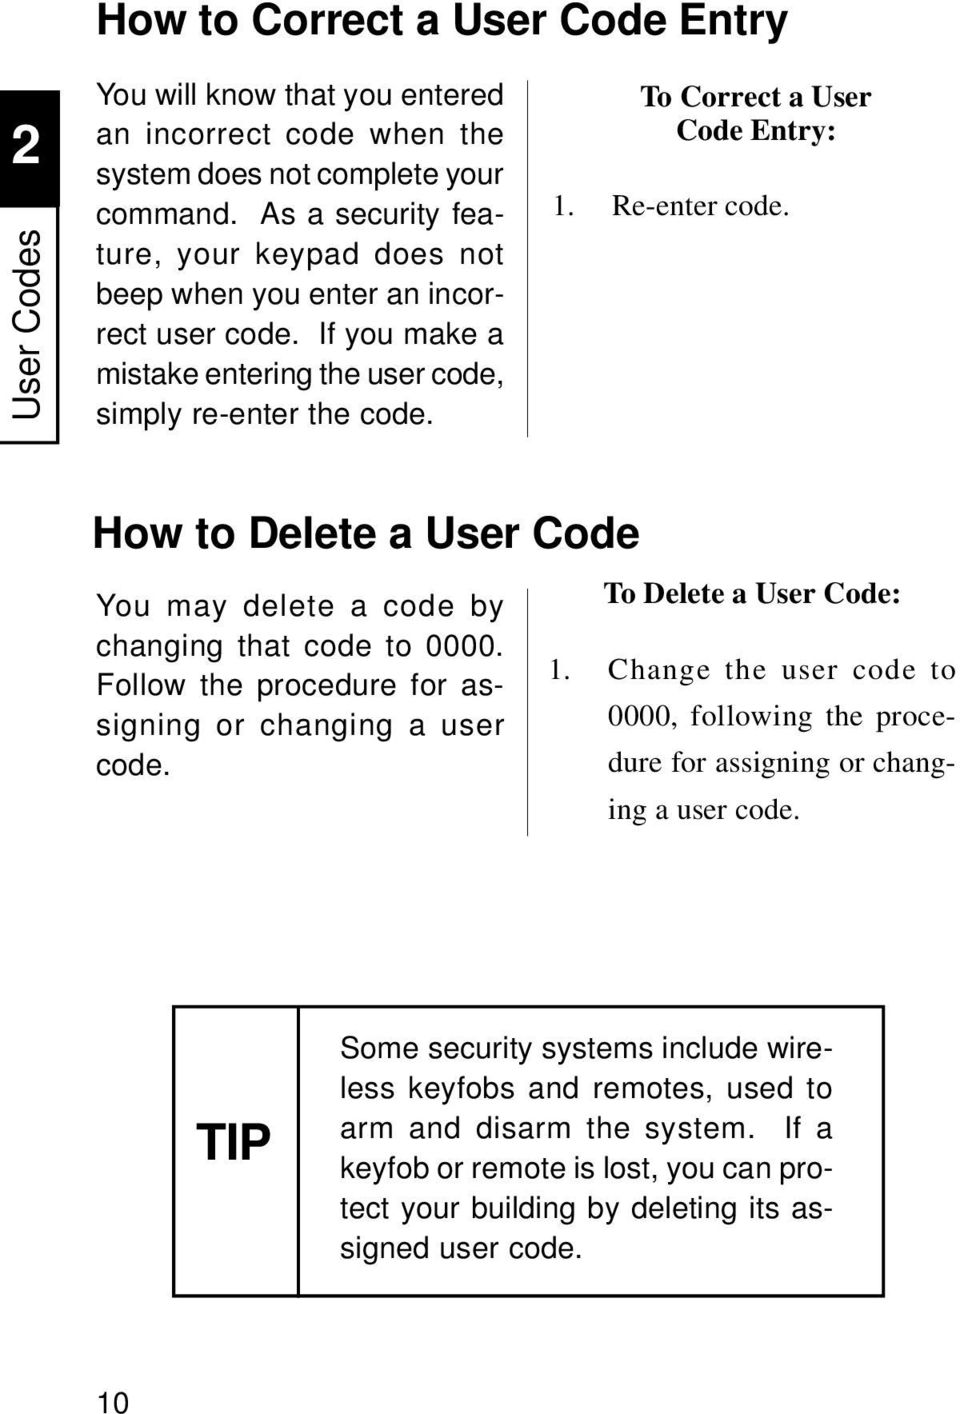 Re-enter code. How to Delete a User Code You may delete a code by changing that code to 0000. Follow the procedure for assigning or changing a user code. To Delete a User Code: 1.